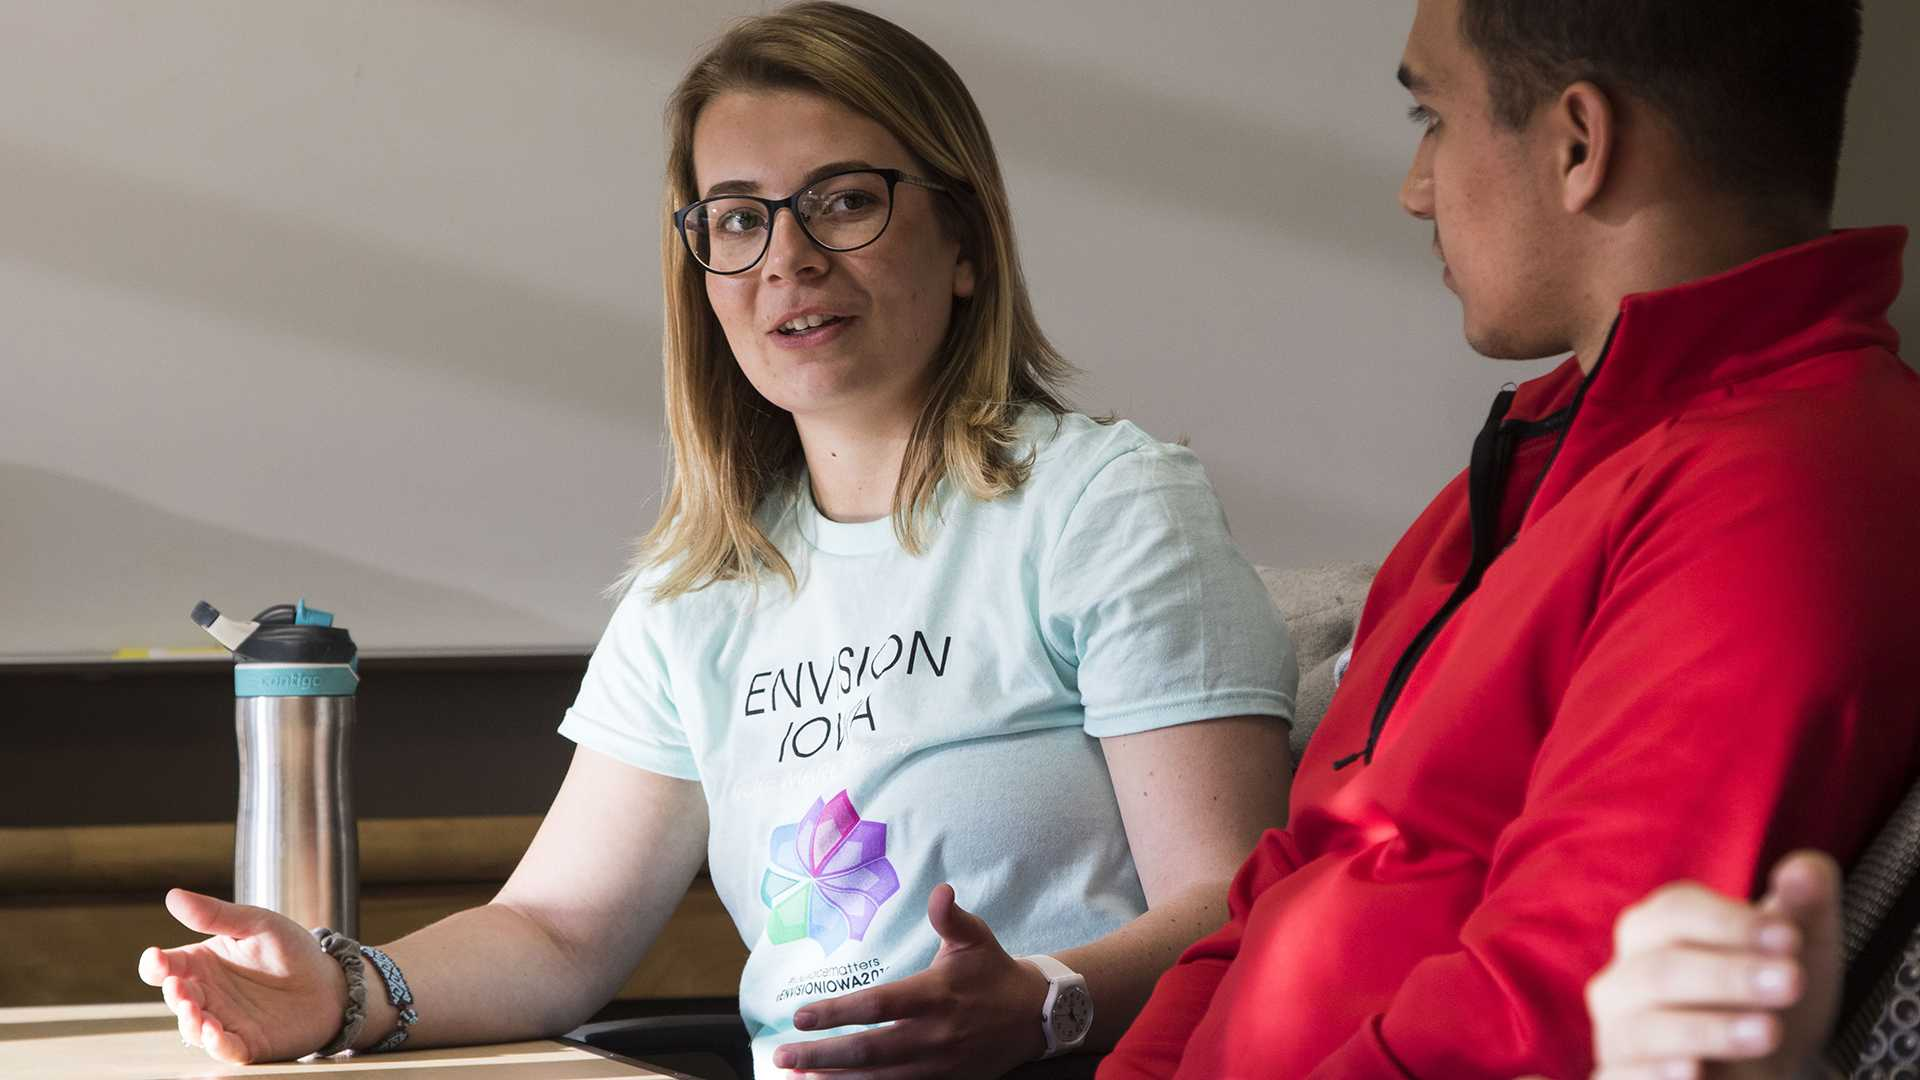 Members of the Envision Iowa party speak in an interview with The Daily Iowan in Adler Journalism Building on Wednesday, March 21, 2018.  (Lily Smith/The Daily Iowan)